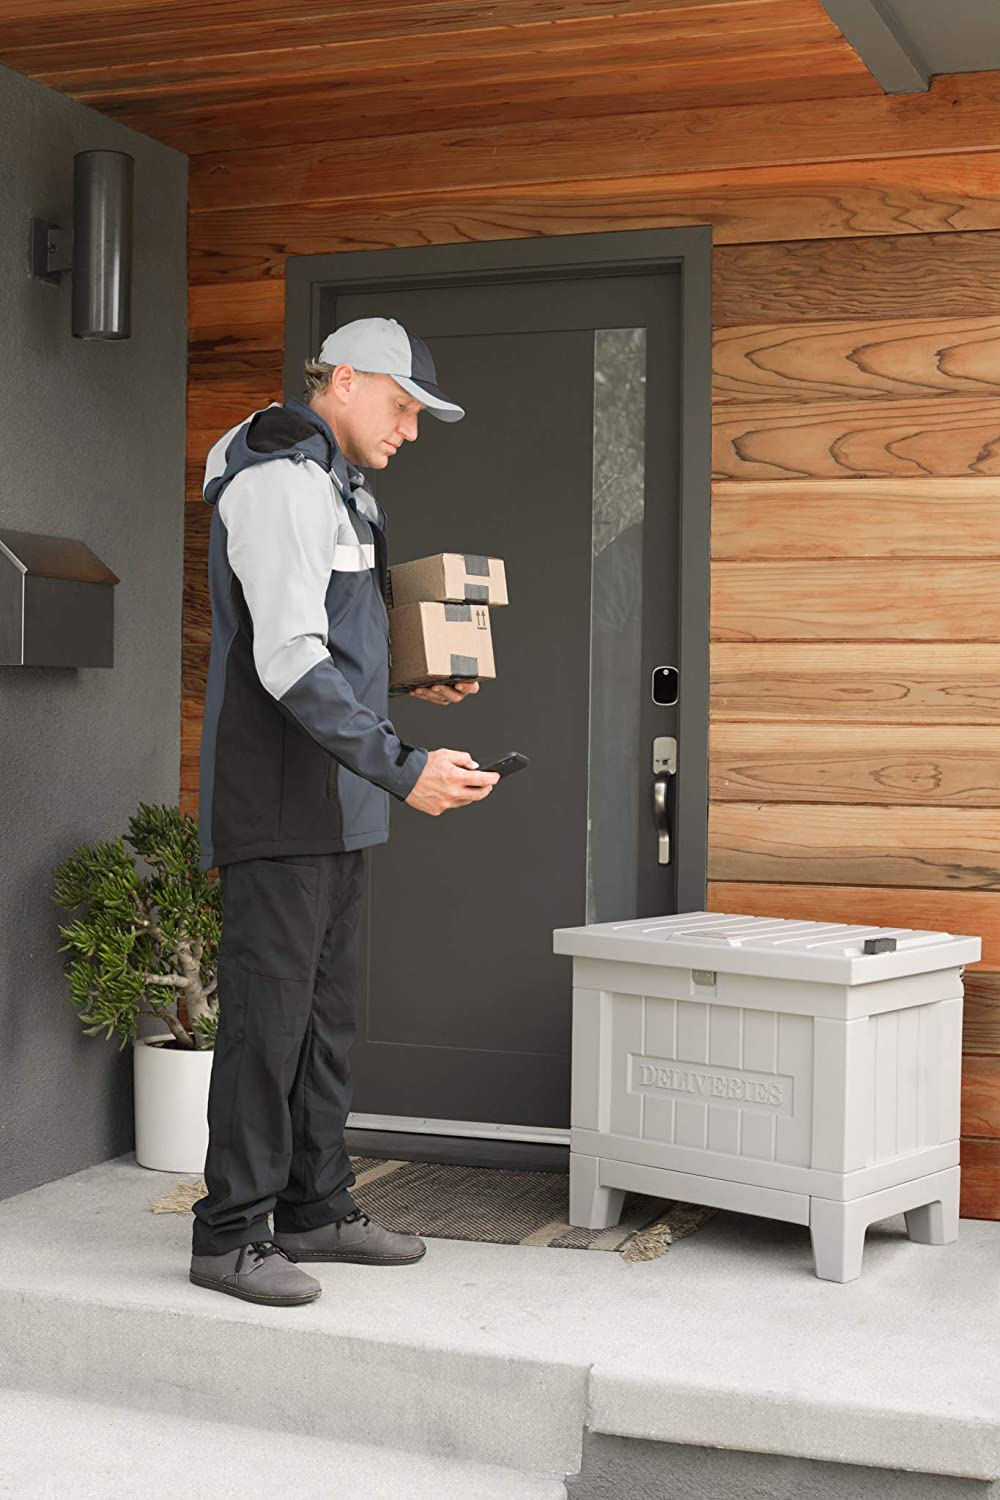 Kent Yale Smart Delivery Box in Manor Gray Keypad and Cooler with Wi-Fi Connect